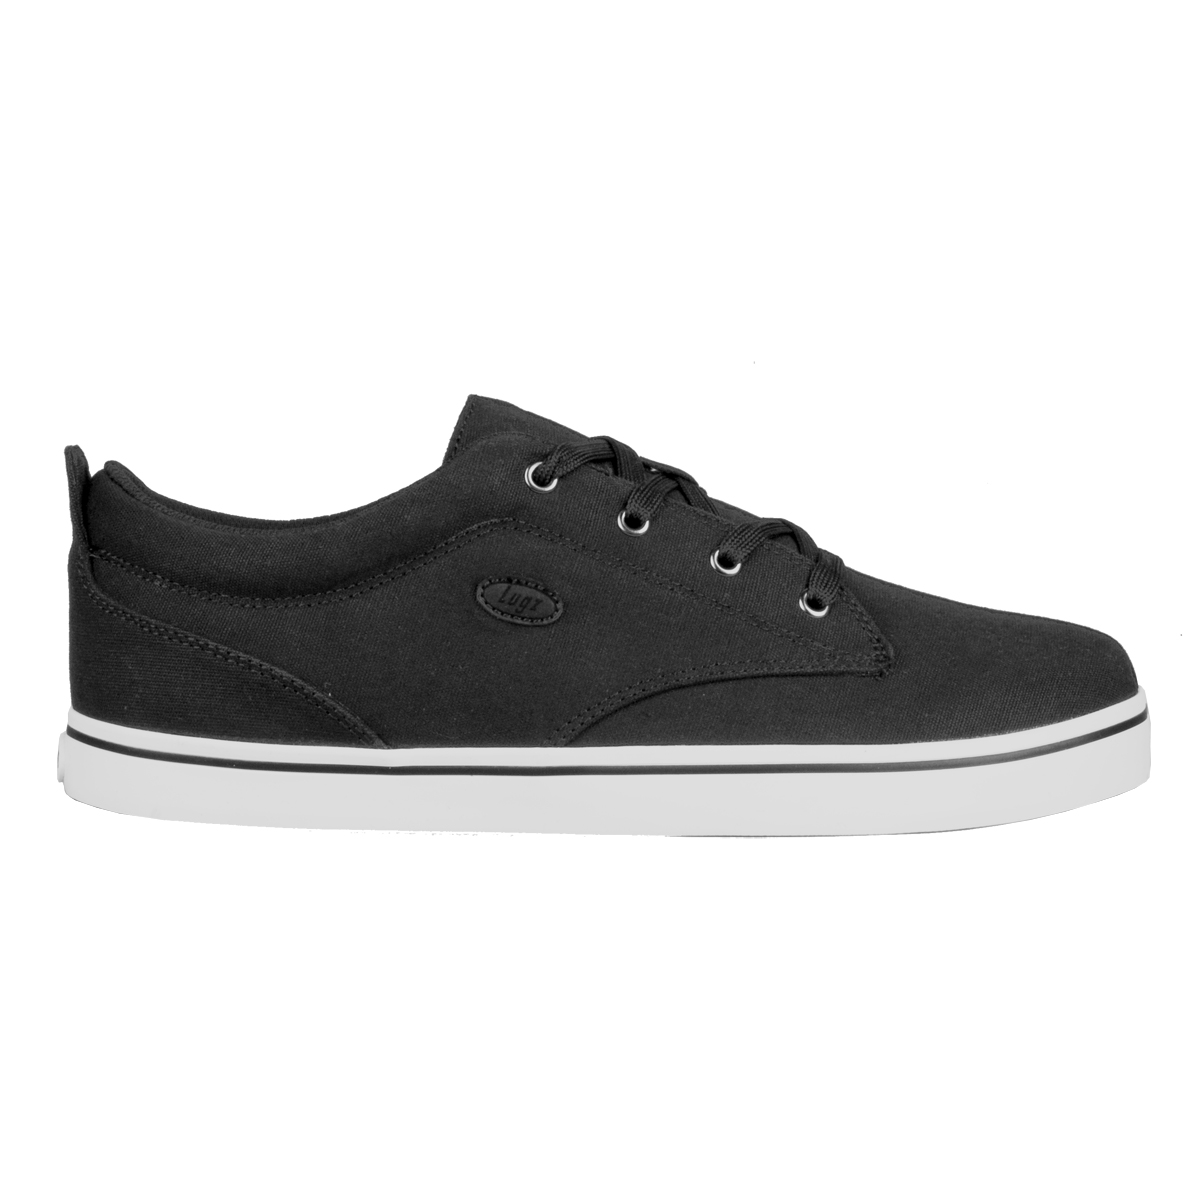 lugz roller lo mens shoe black white stylish footwear